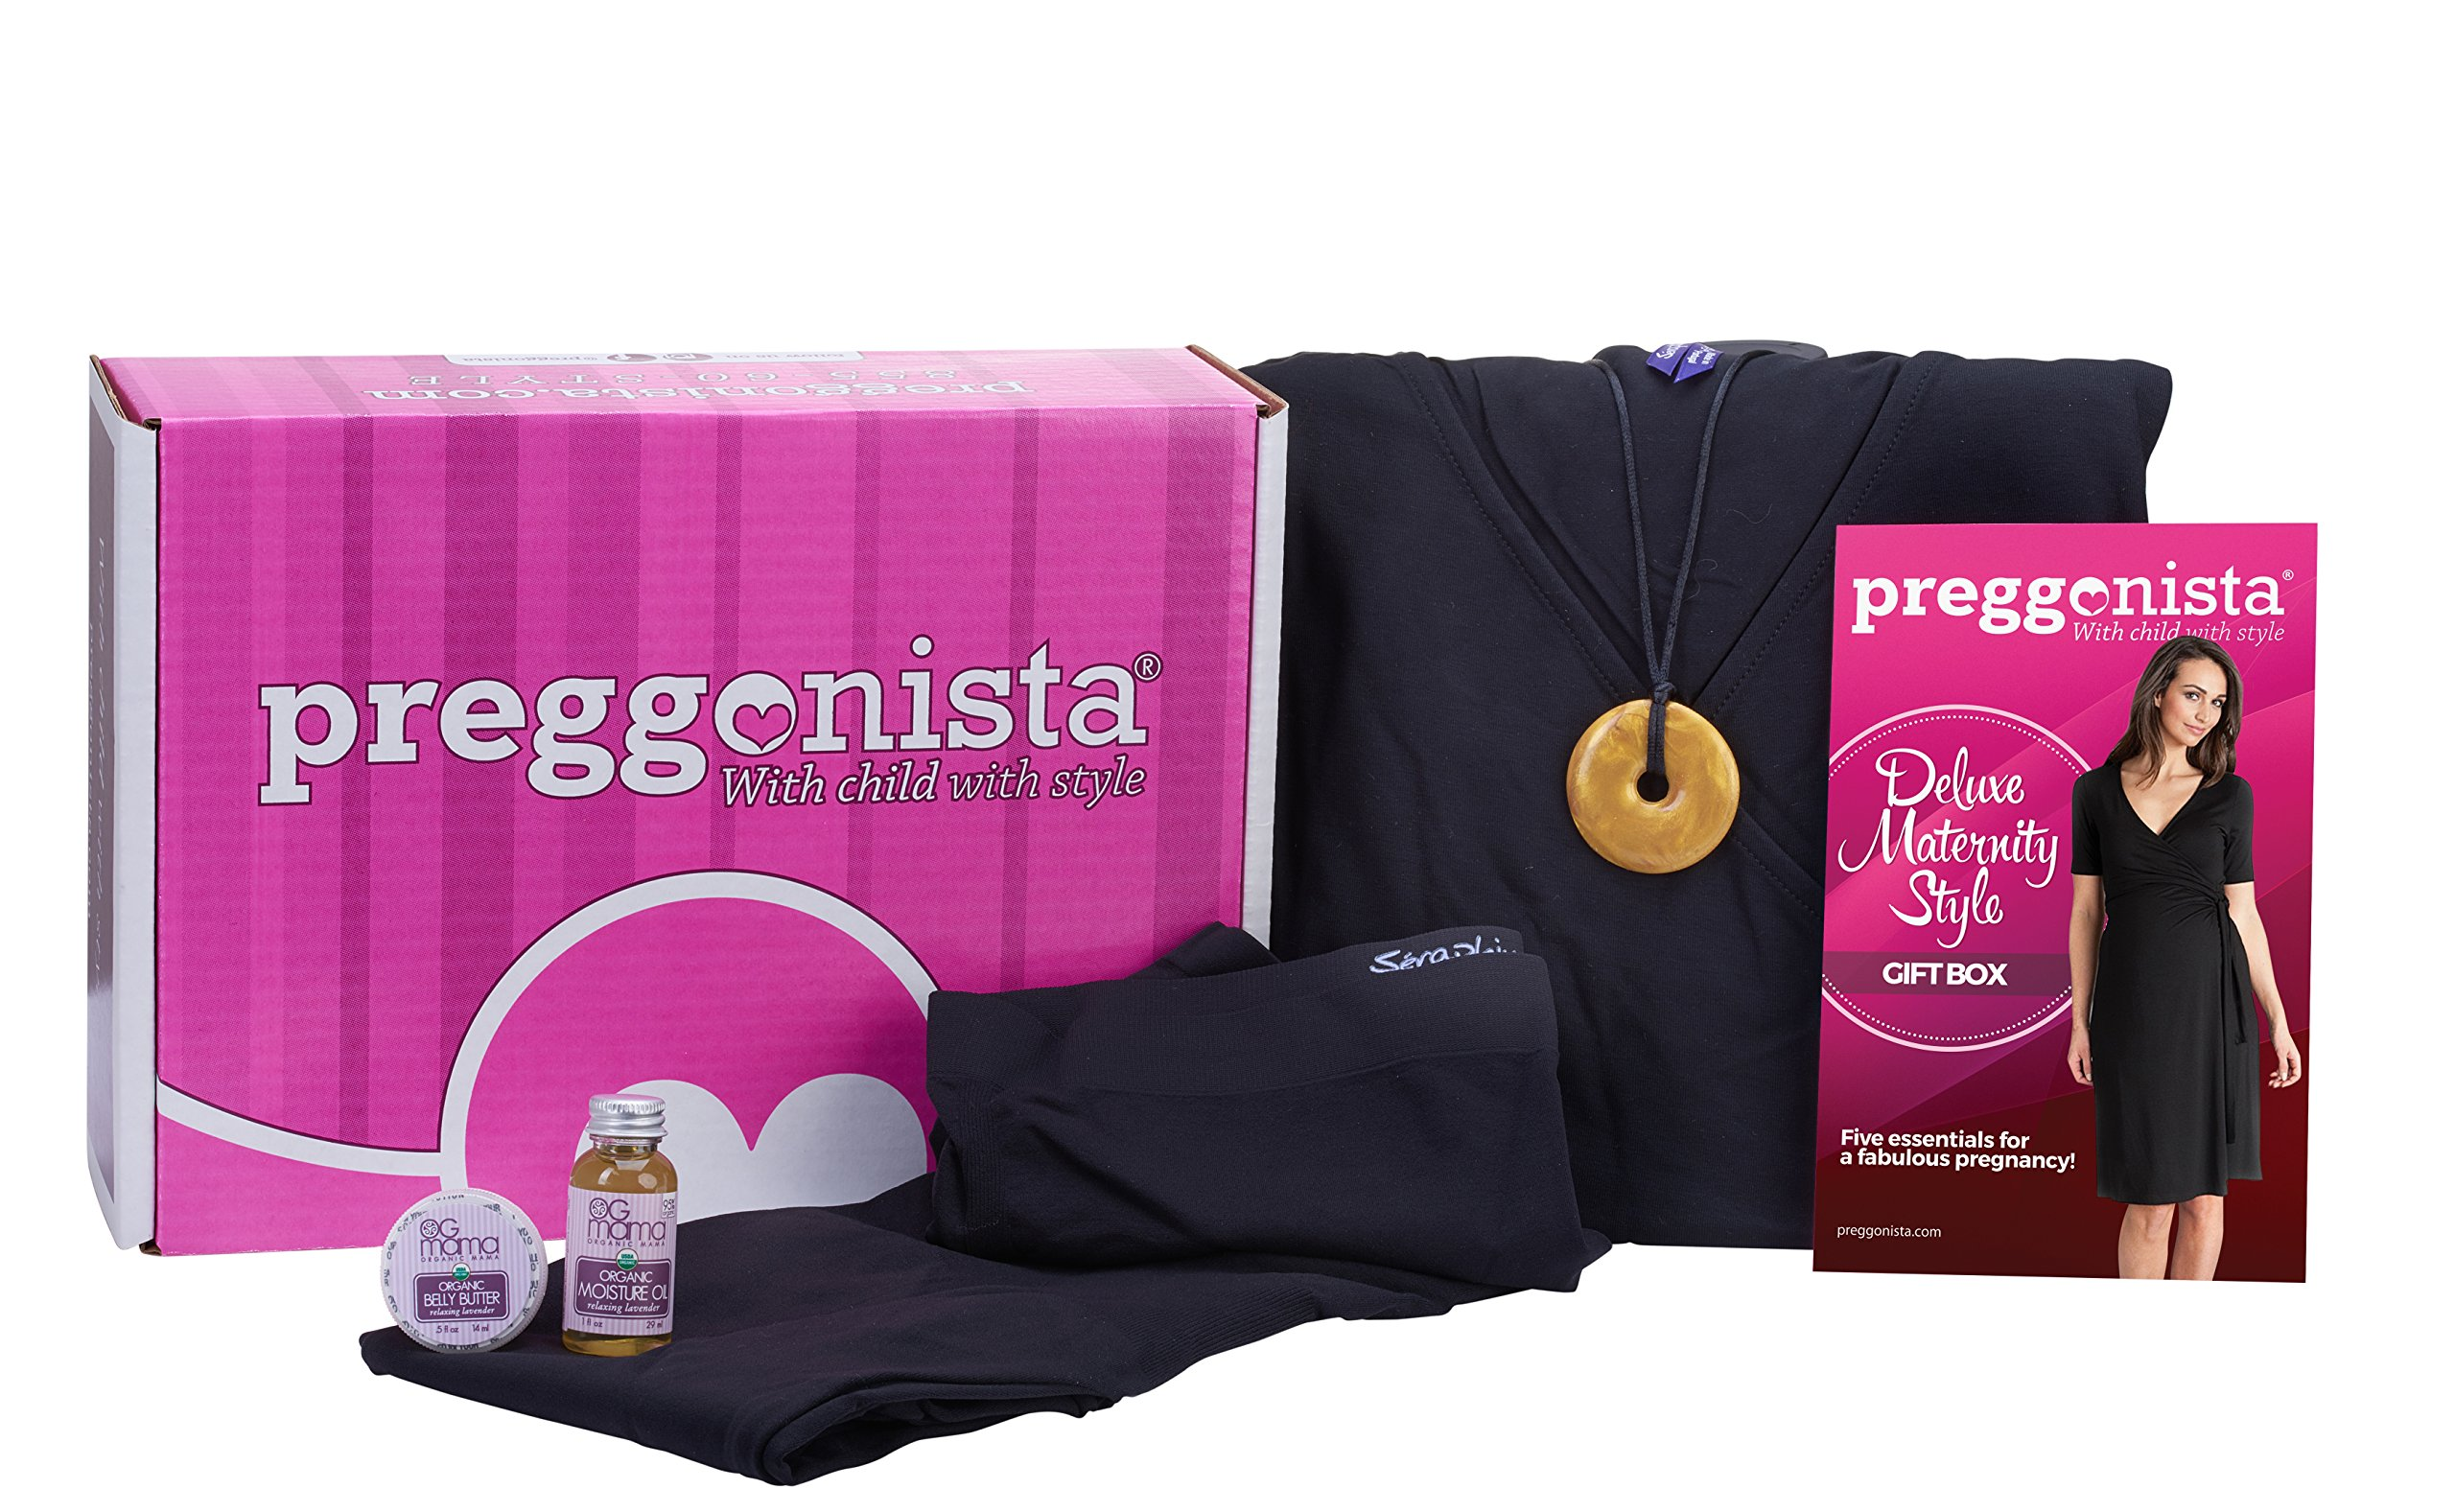 Preggonista 5-Piece Deluxe Maternity Style Gift Box Extra Large by Preggonista